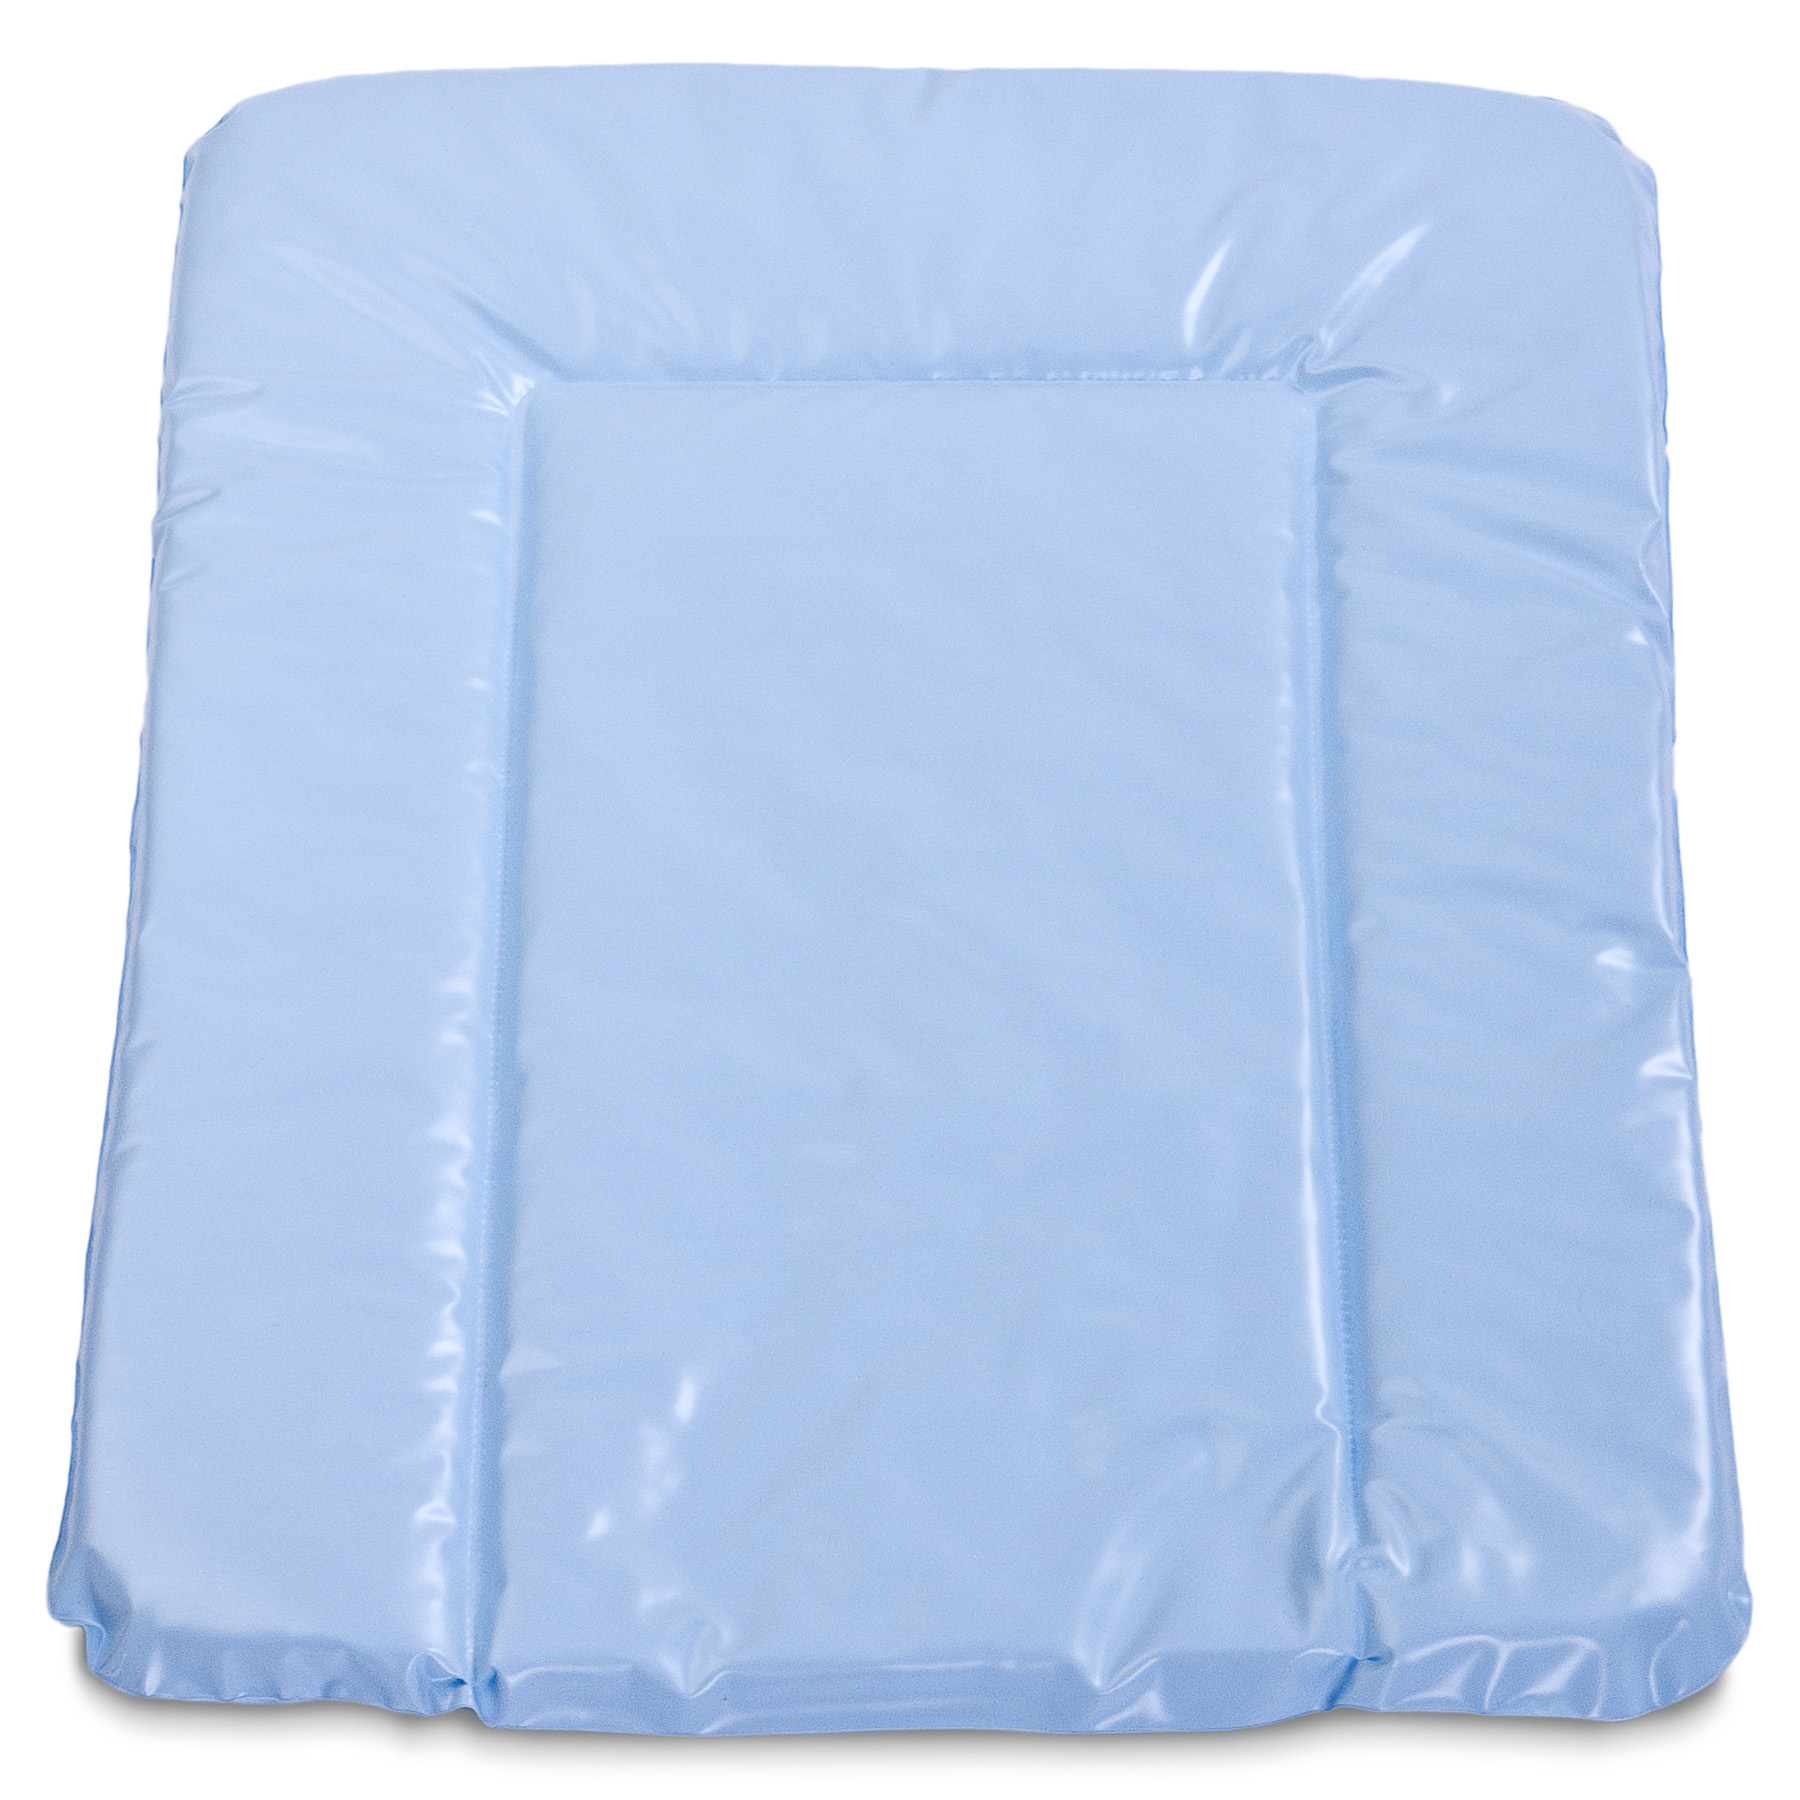 Padding/Changing mat – blue